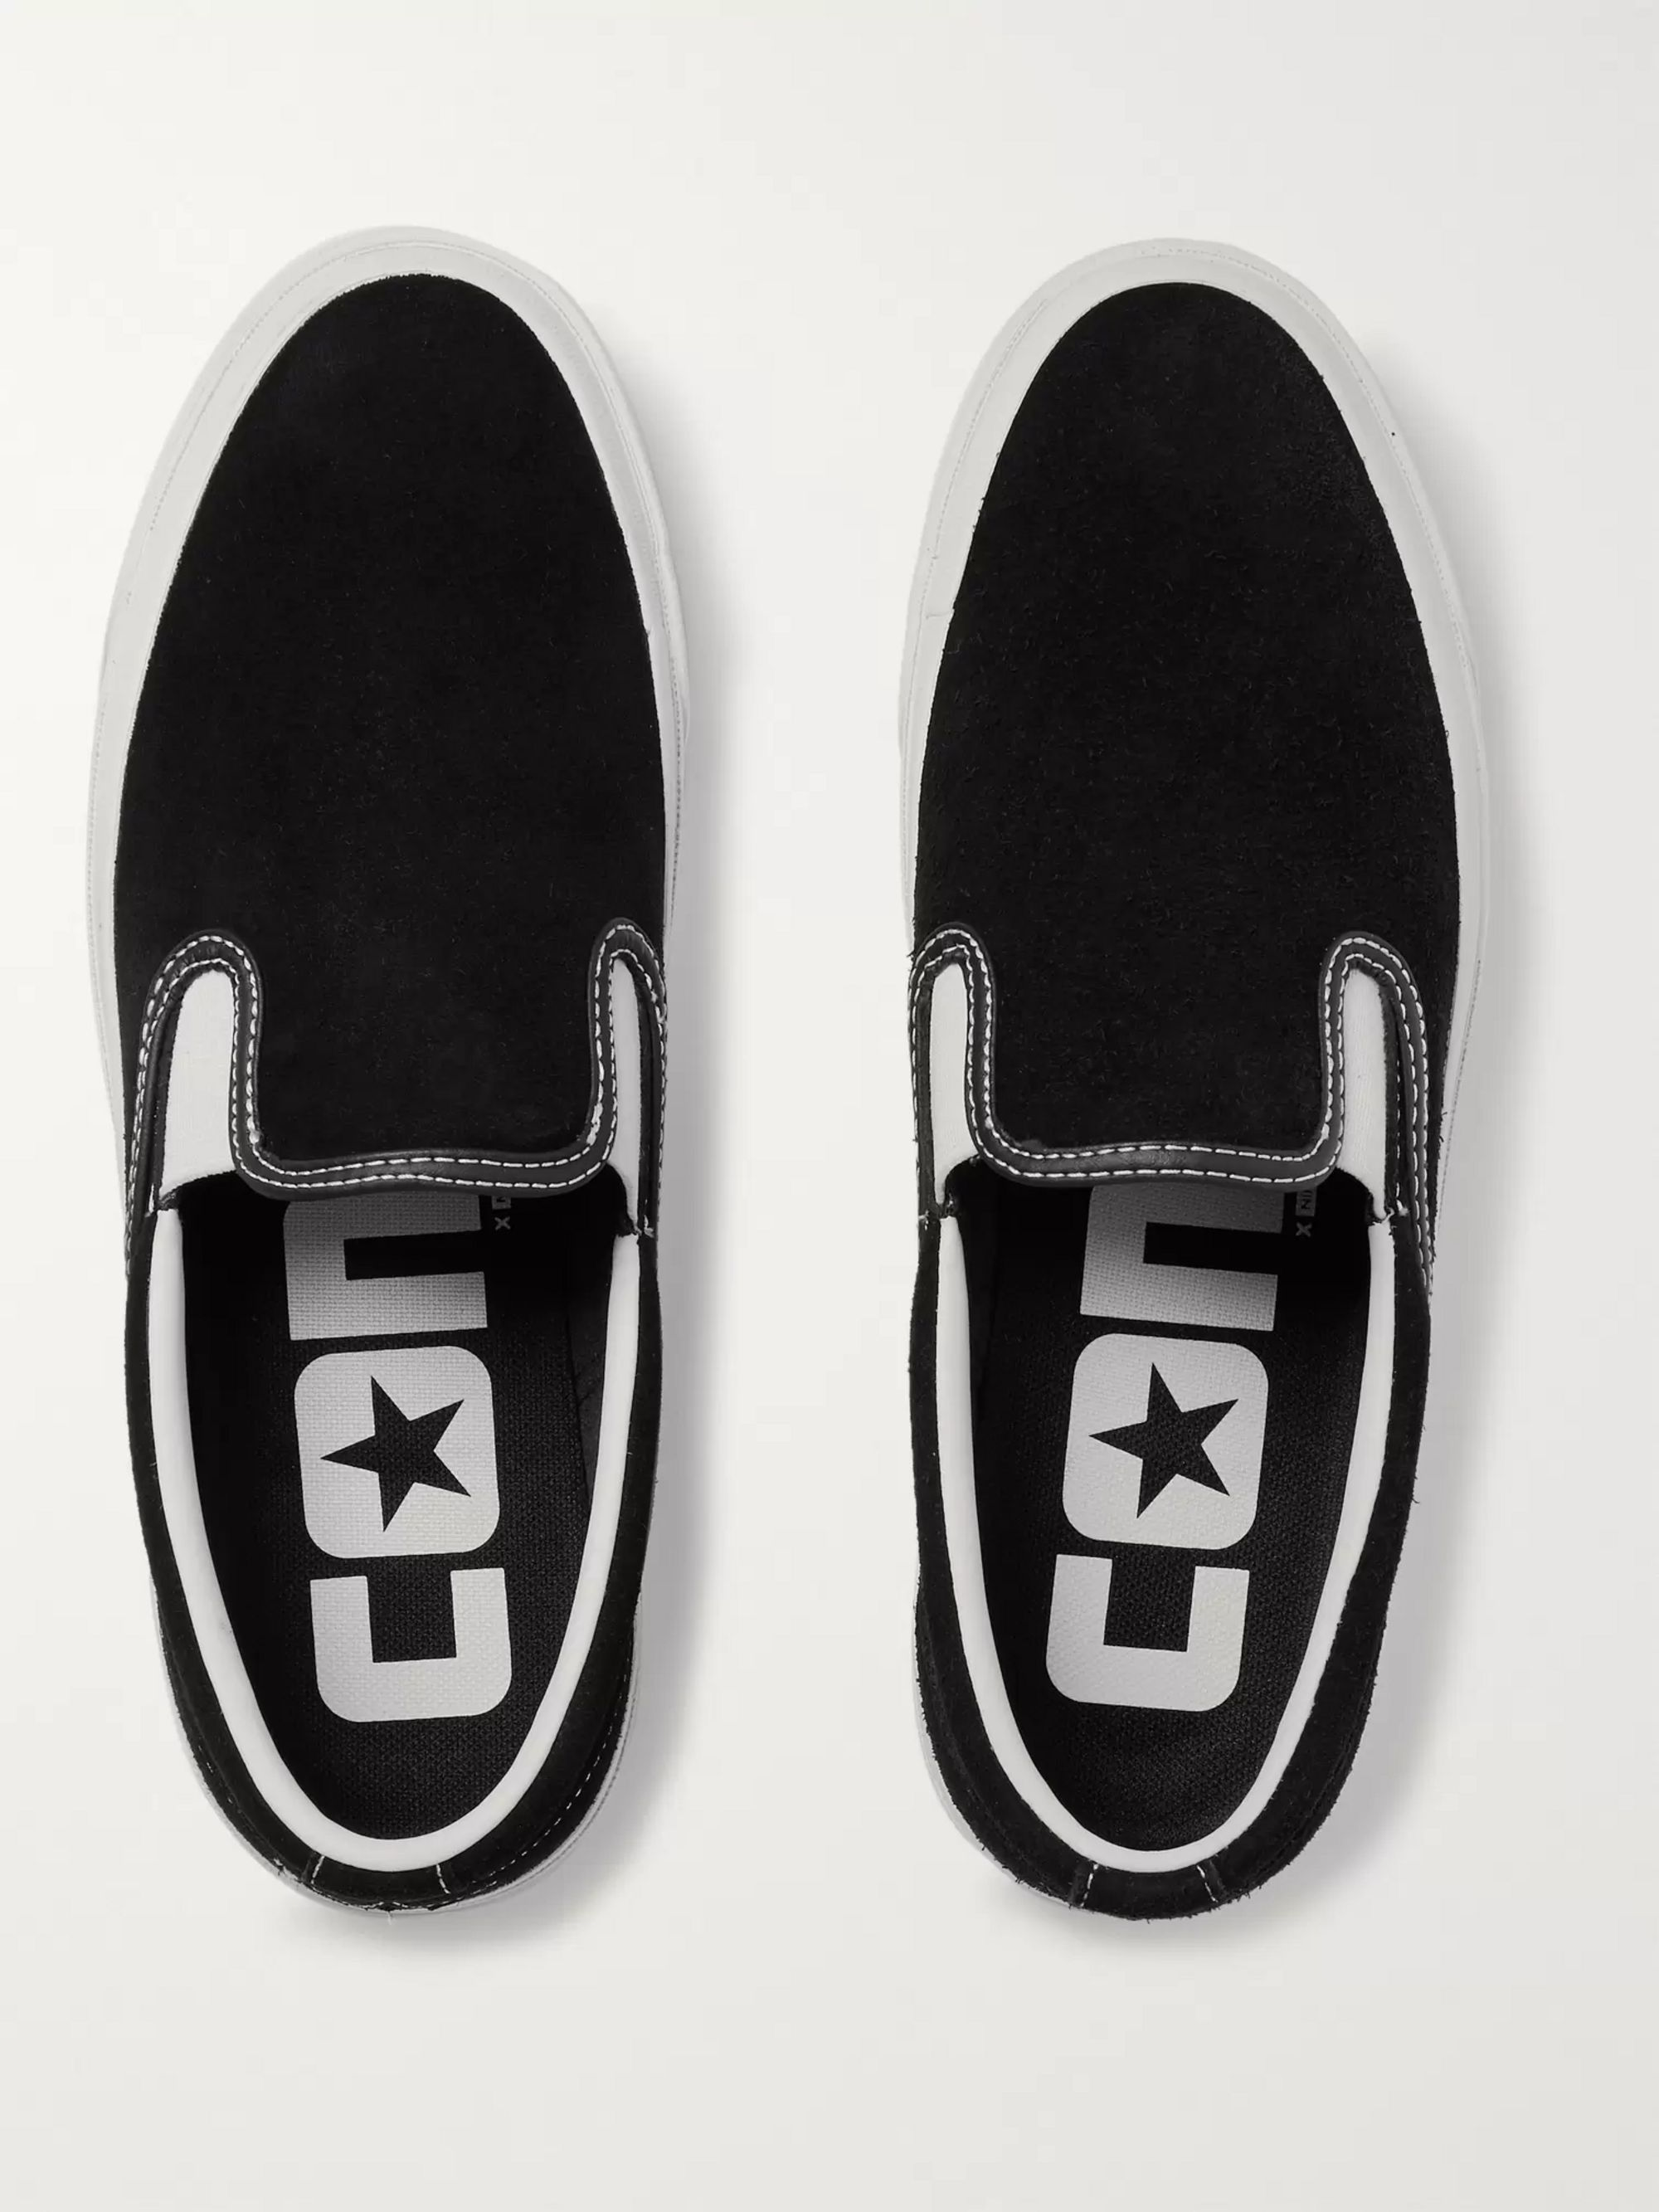 Converse One Star CC Suede Slip-On Sneakers